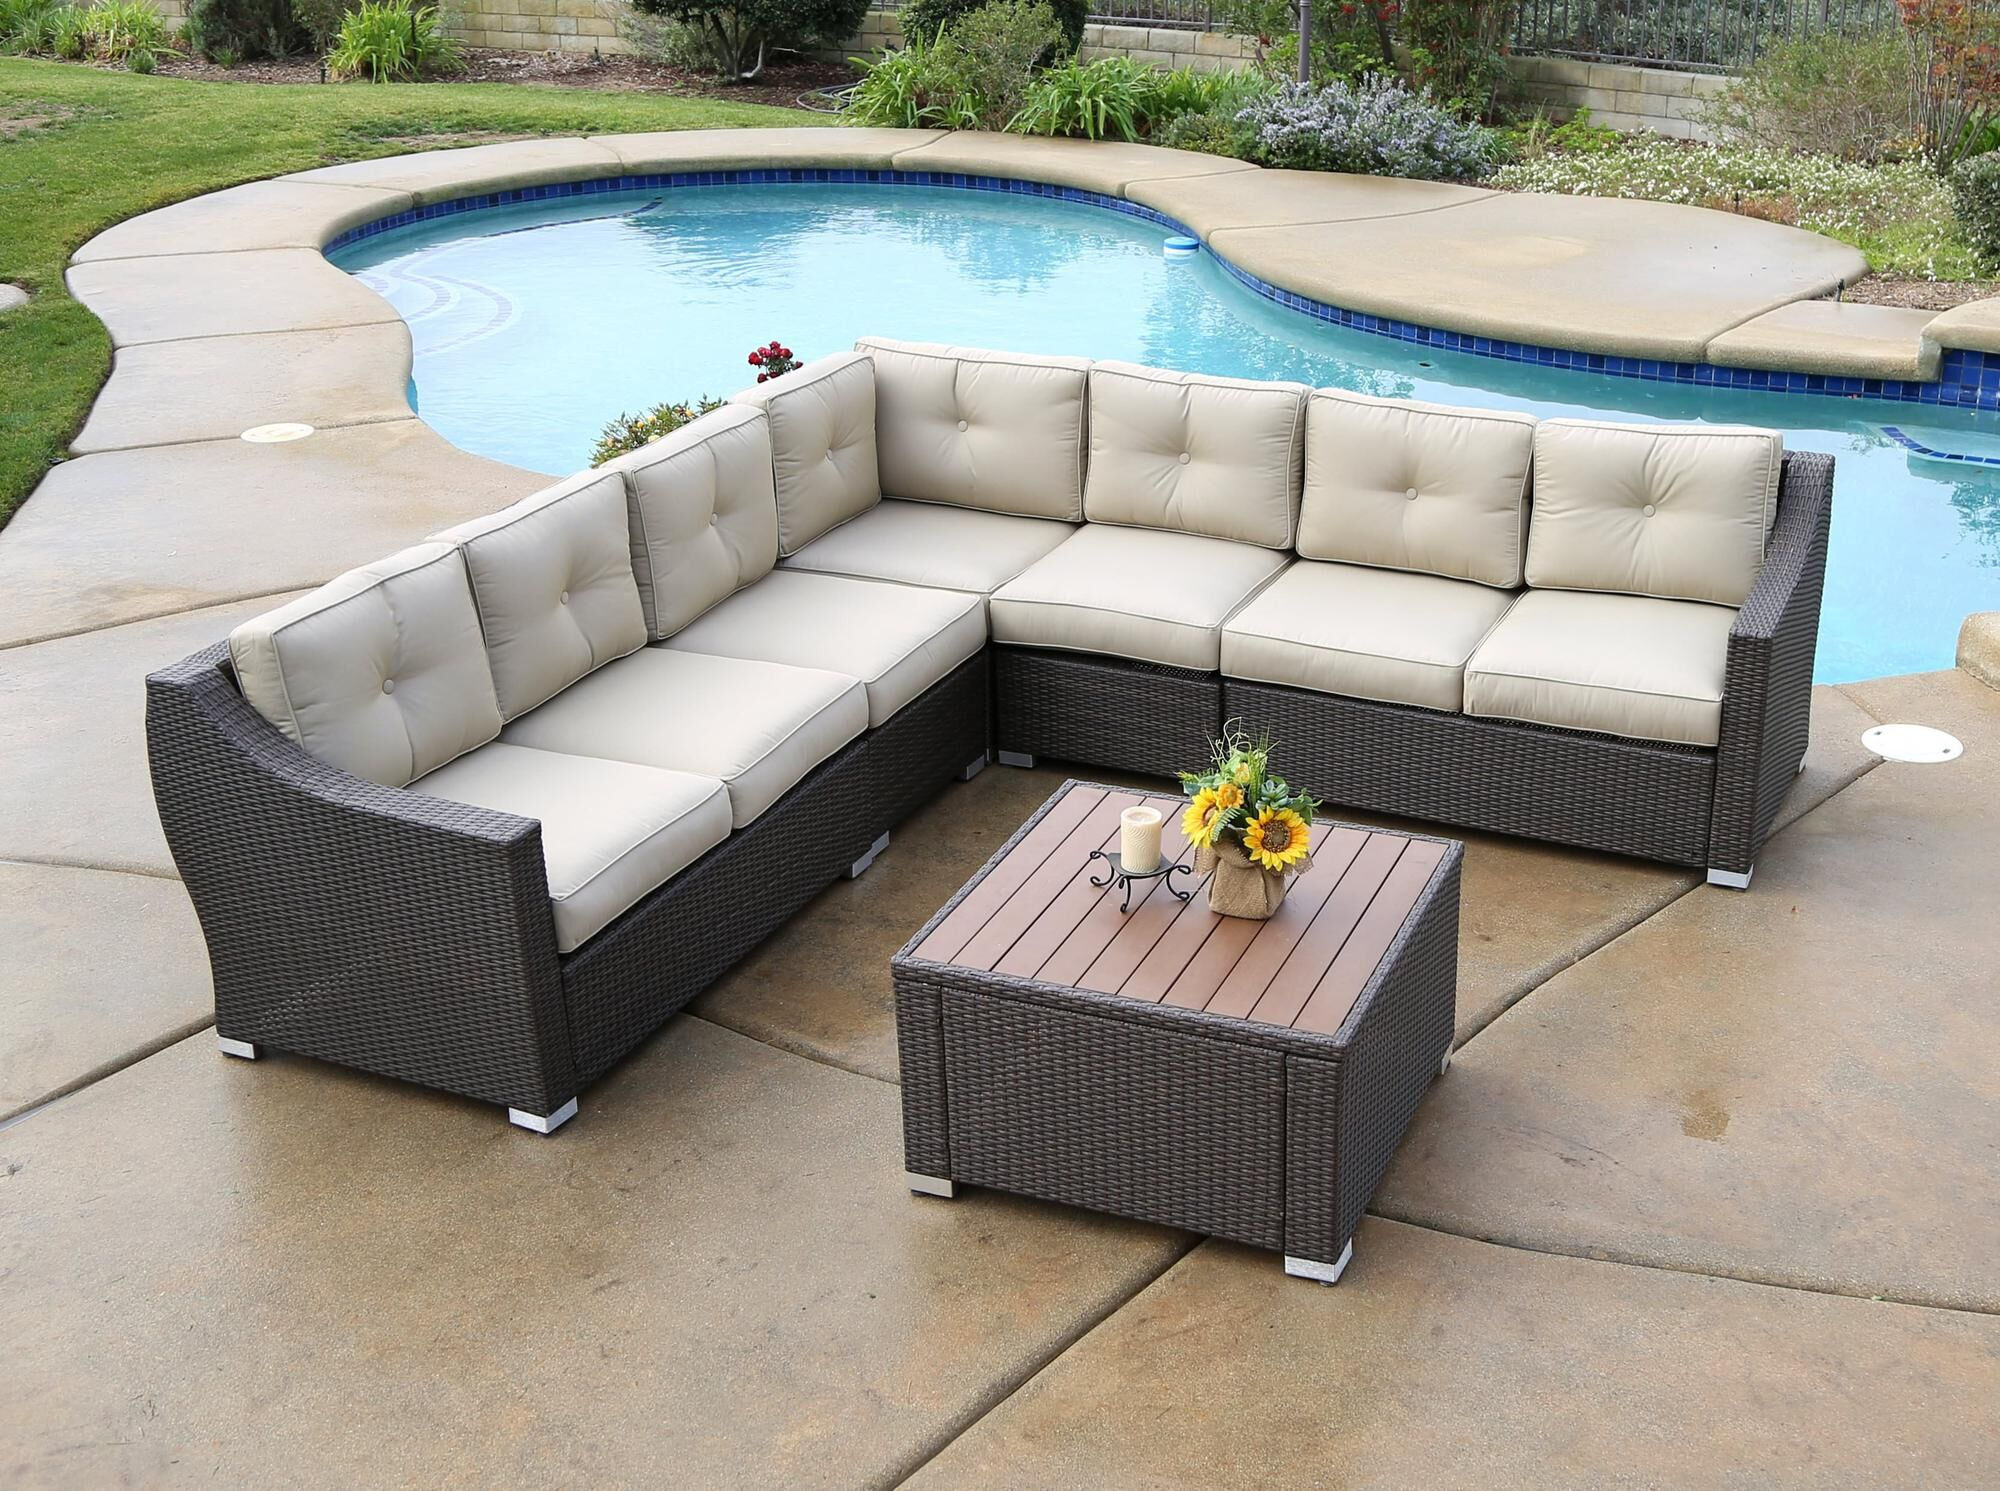 Lanclos 6 Piece Sectional Seating Group with Cushions